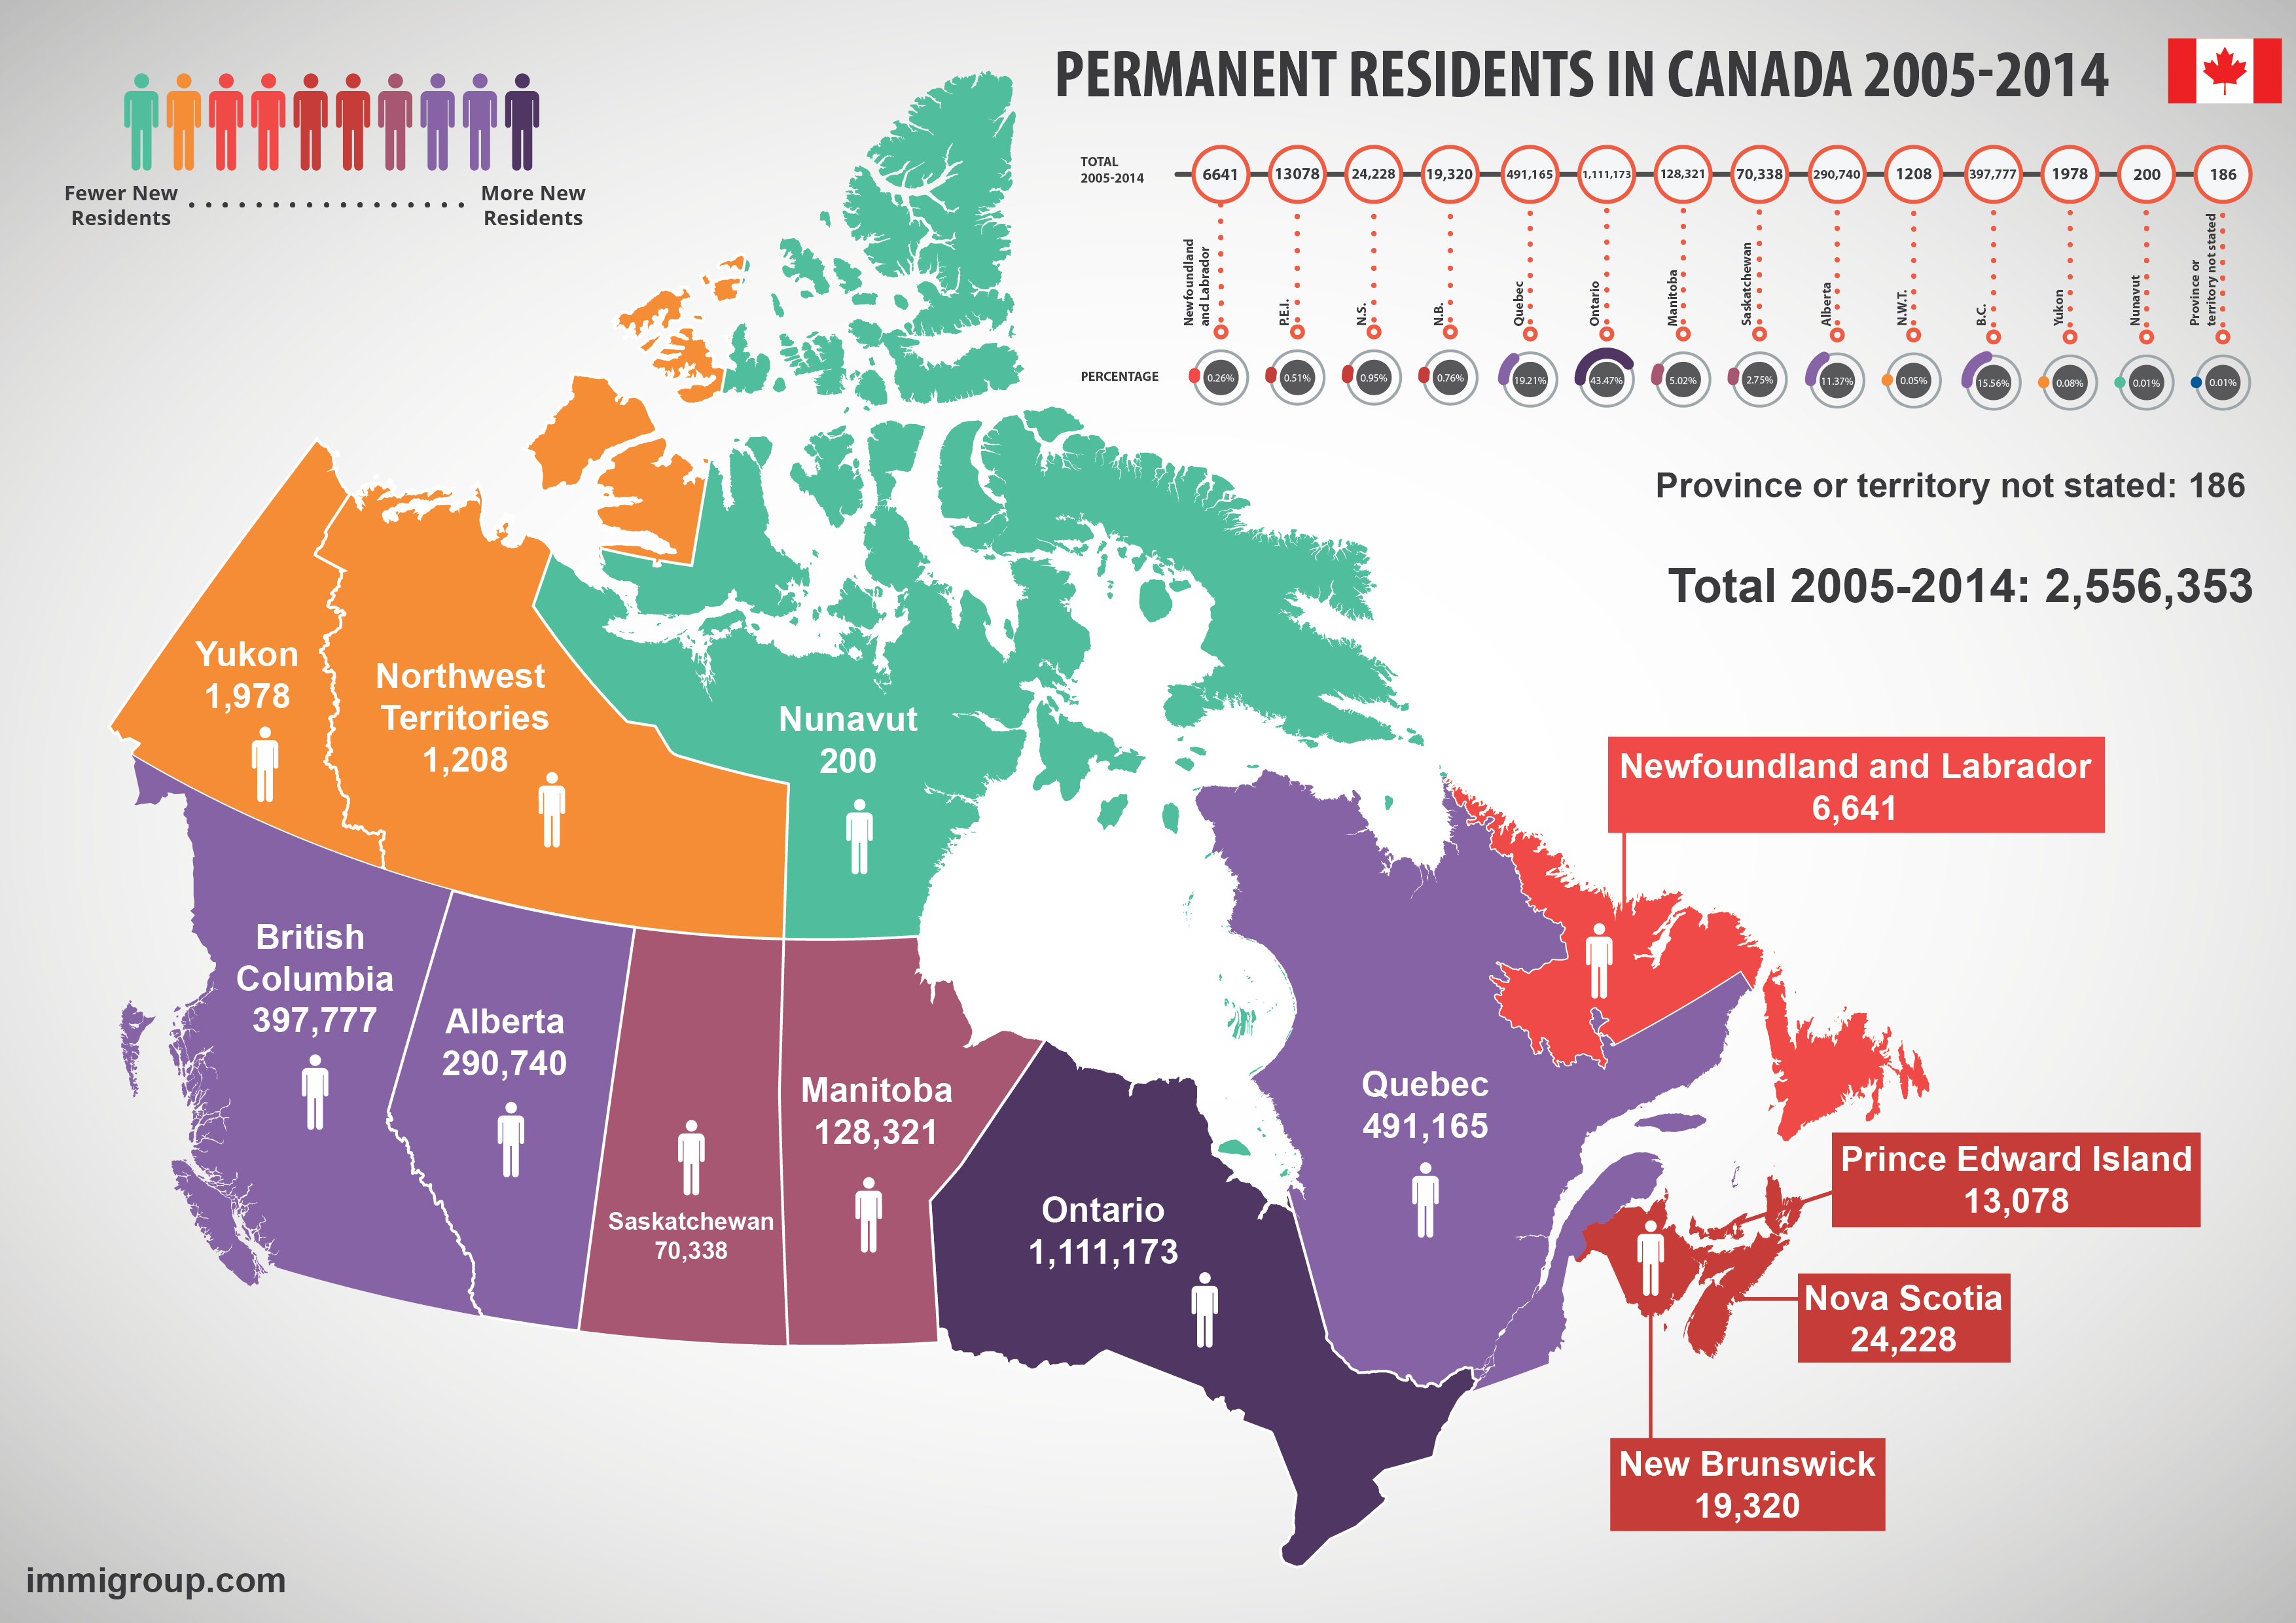 I9mmigrants In Canada Map Immigration: The United States of America vs Canada   Immigroup